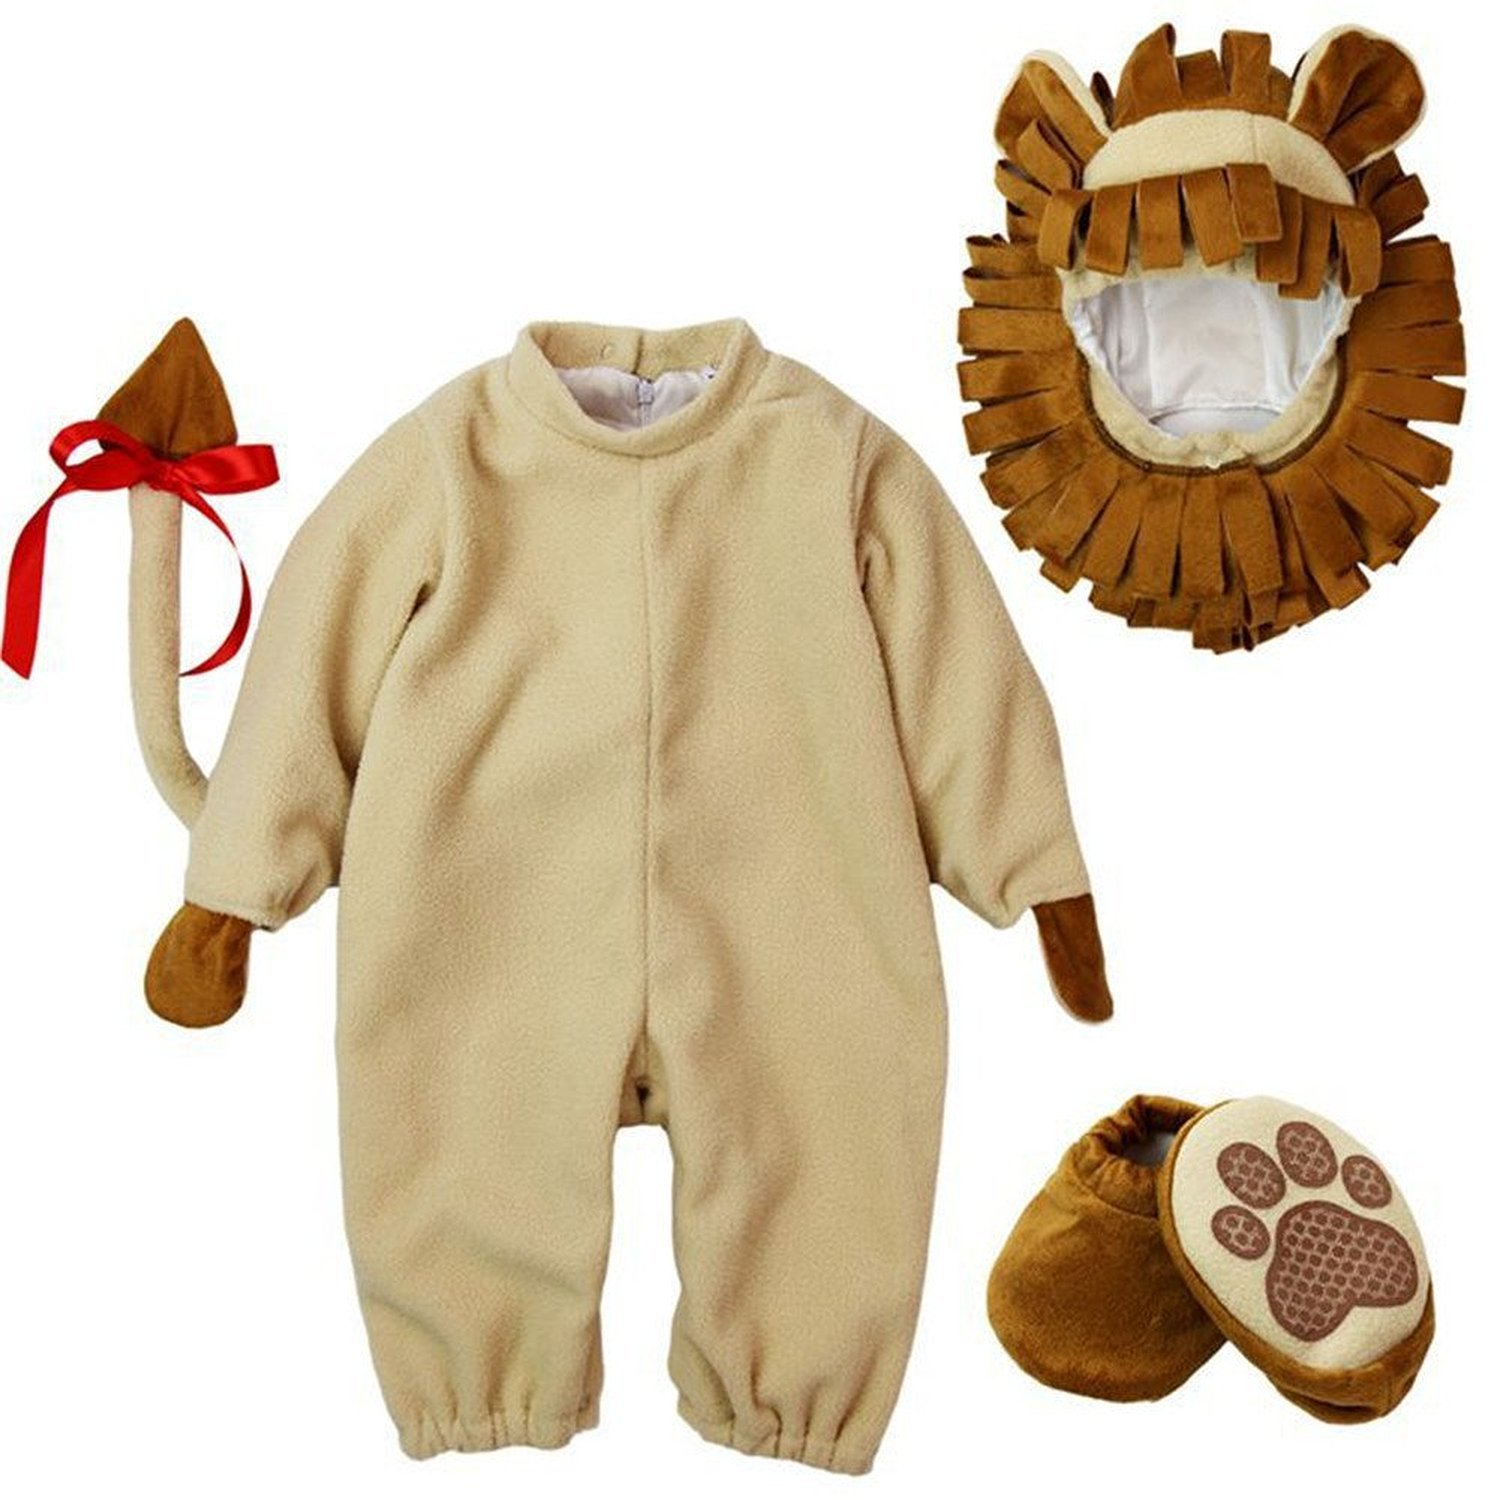 Zhiban Baby Boys Kangaroo Costume Cosplay Suits for Infant Girls Onesie